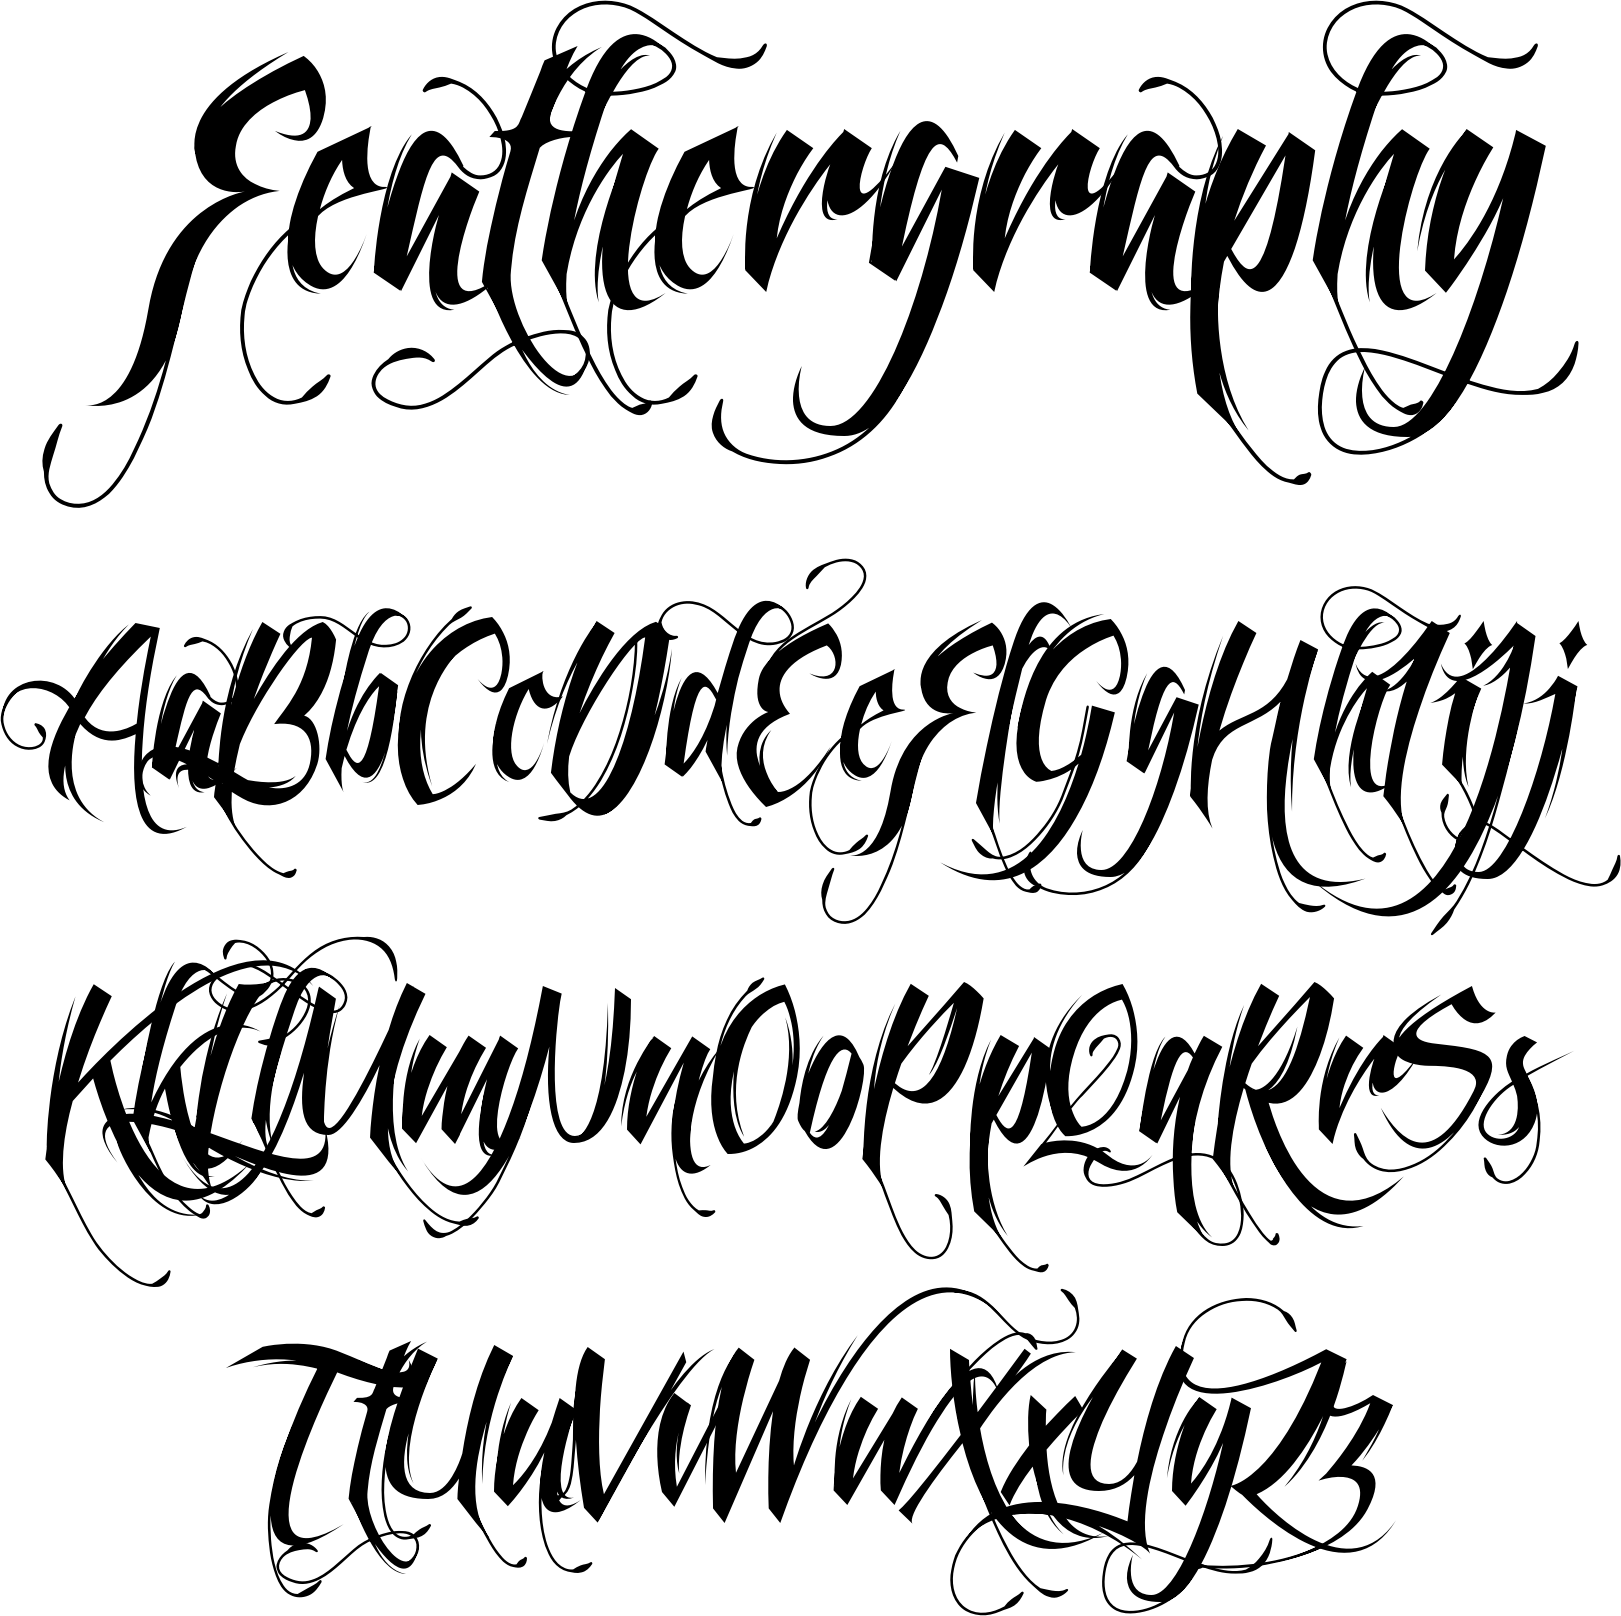 Tattoo Fonts: My Font For My Stay Strong Tattoo.